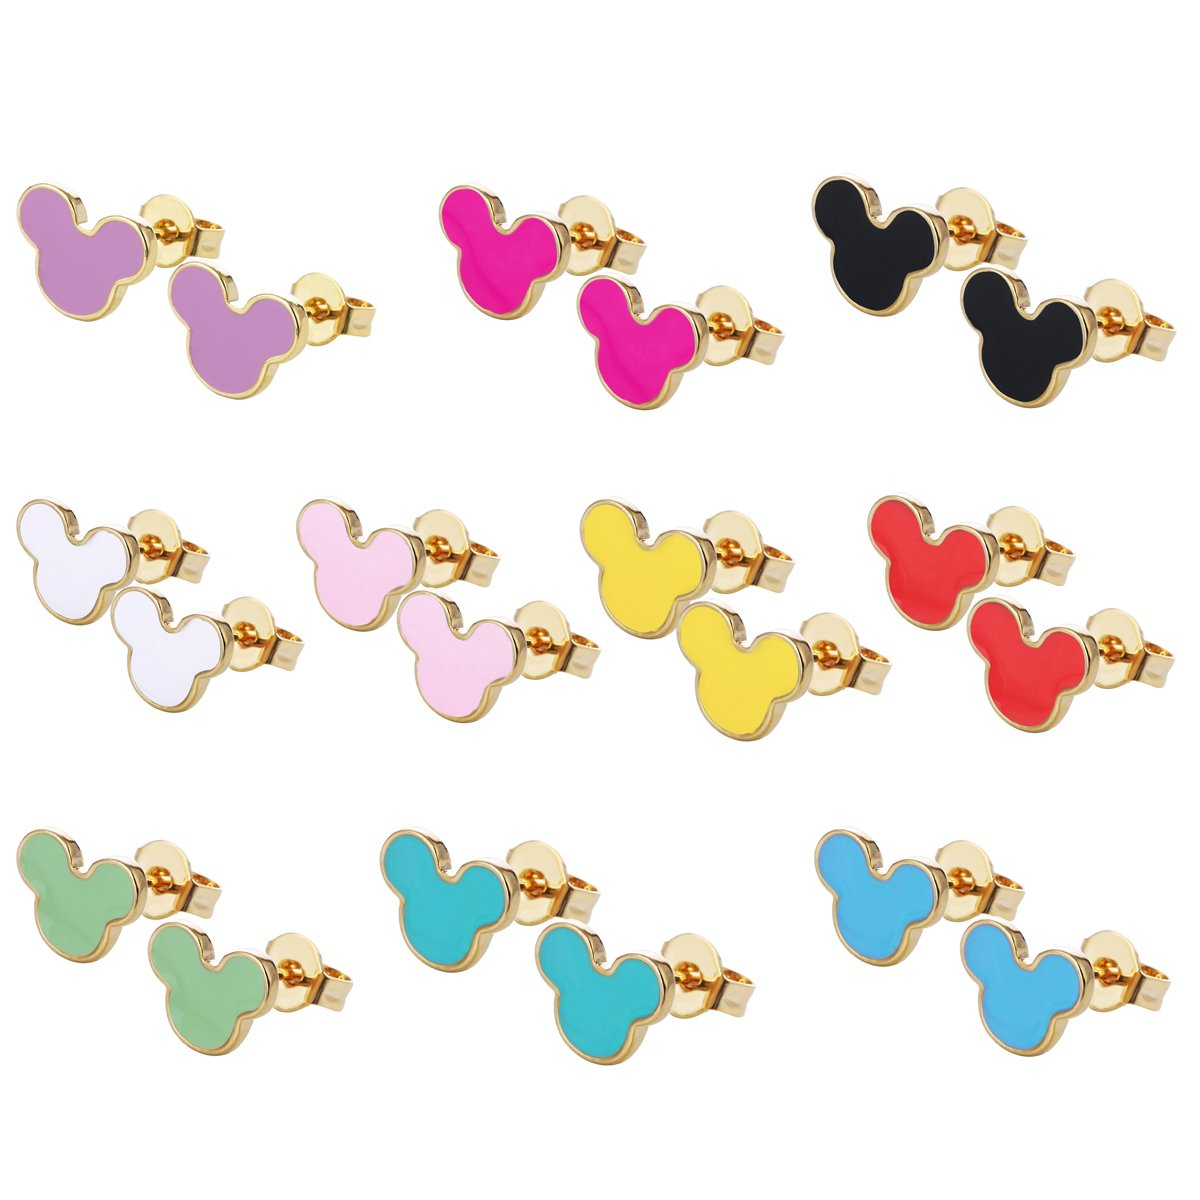 10/8Pairs 18K Gold Plated Small Cute Simple Post Stud Earrings Set for Girls Kids Gold Tone Mix and Match HYZ HYZ-DL01